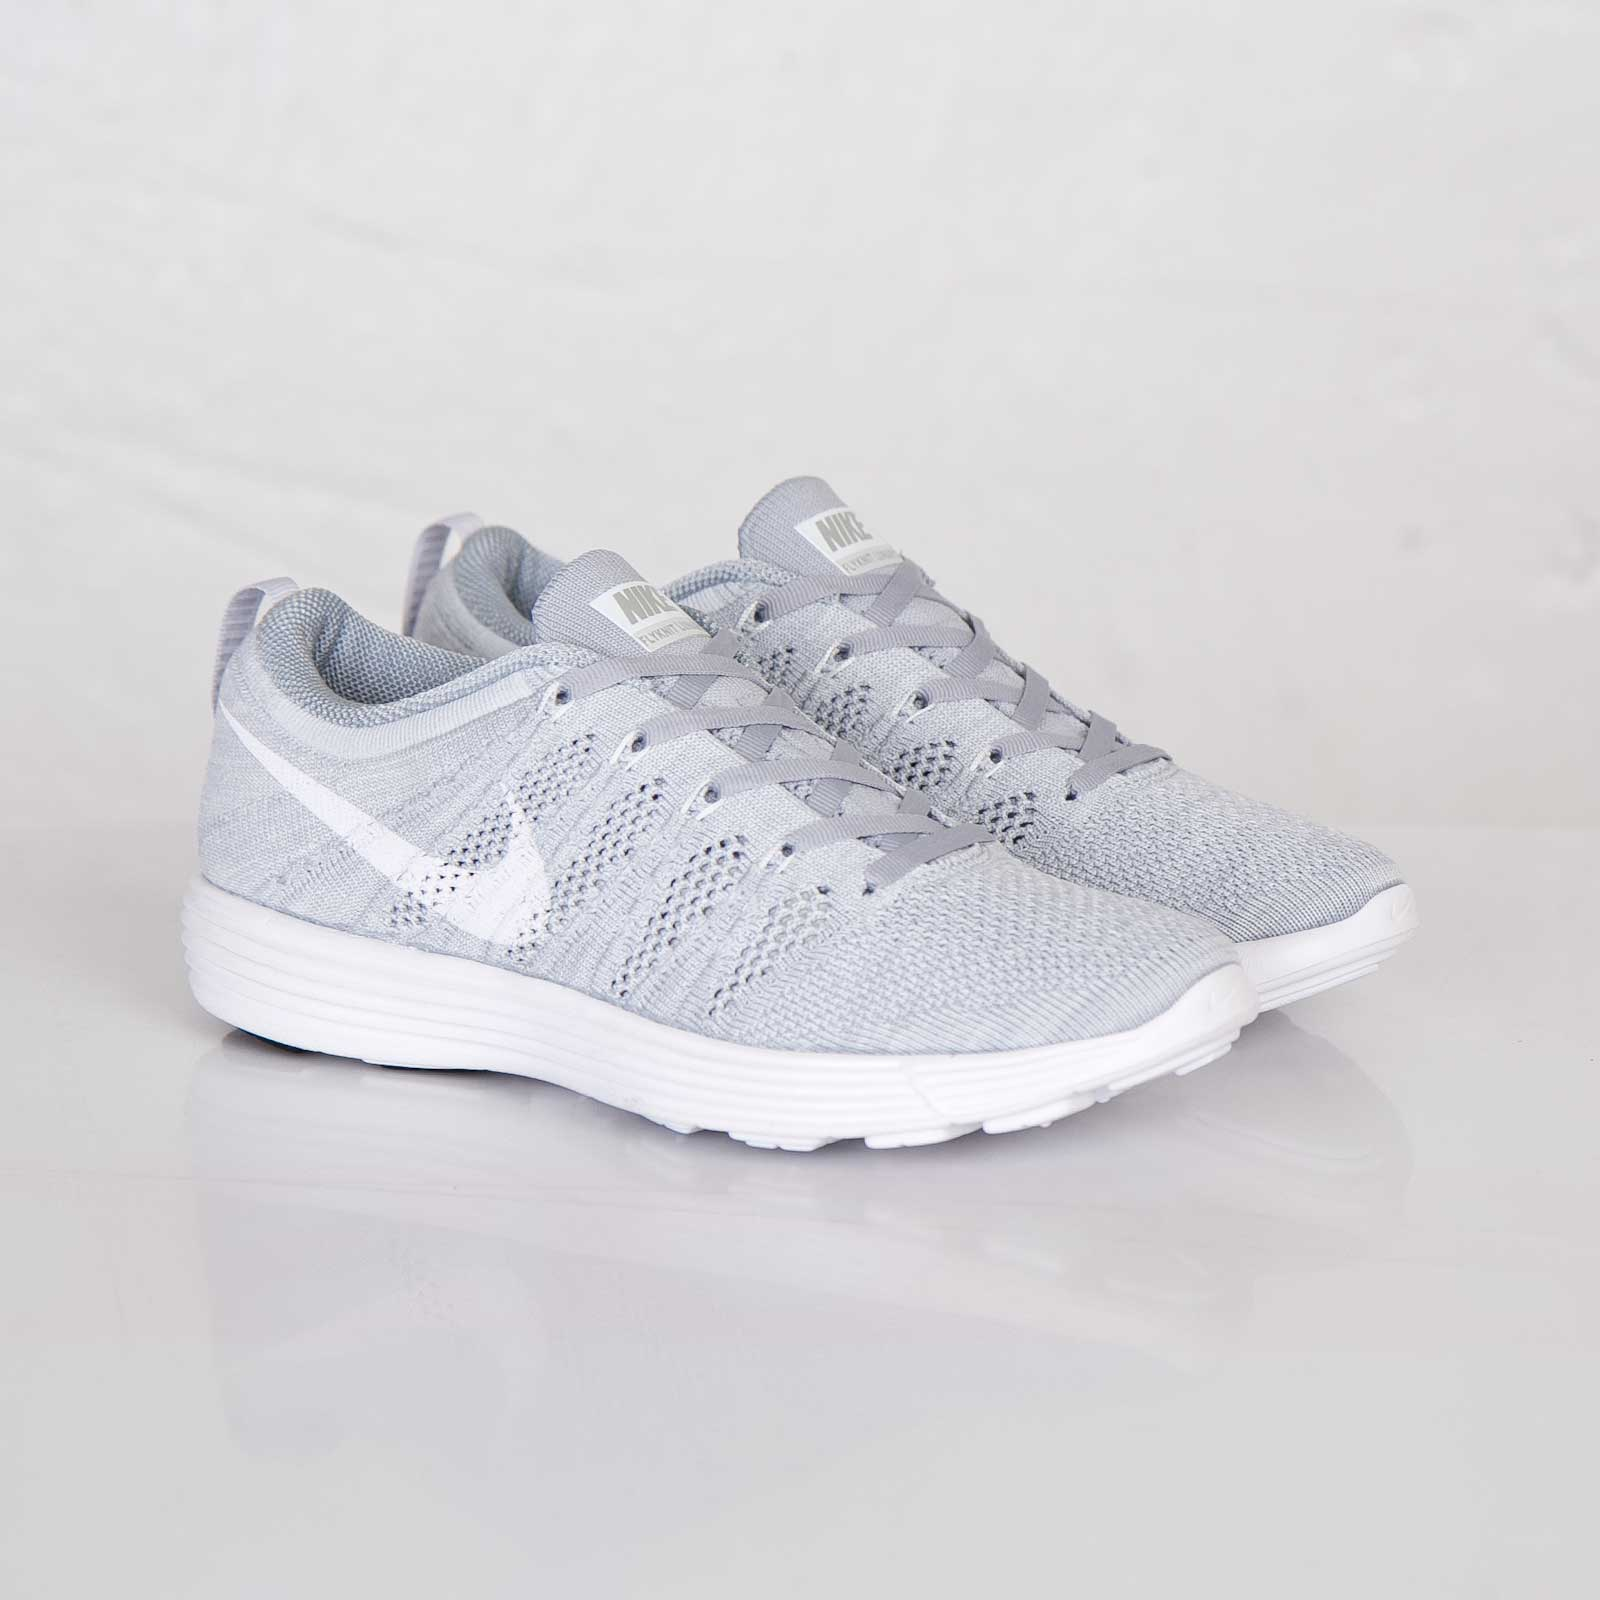 differently ac4c4 8b5bd Nike Wmns Flyknit Trainer